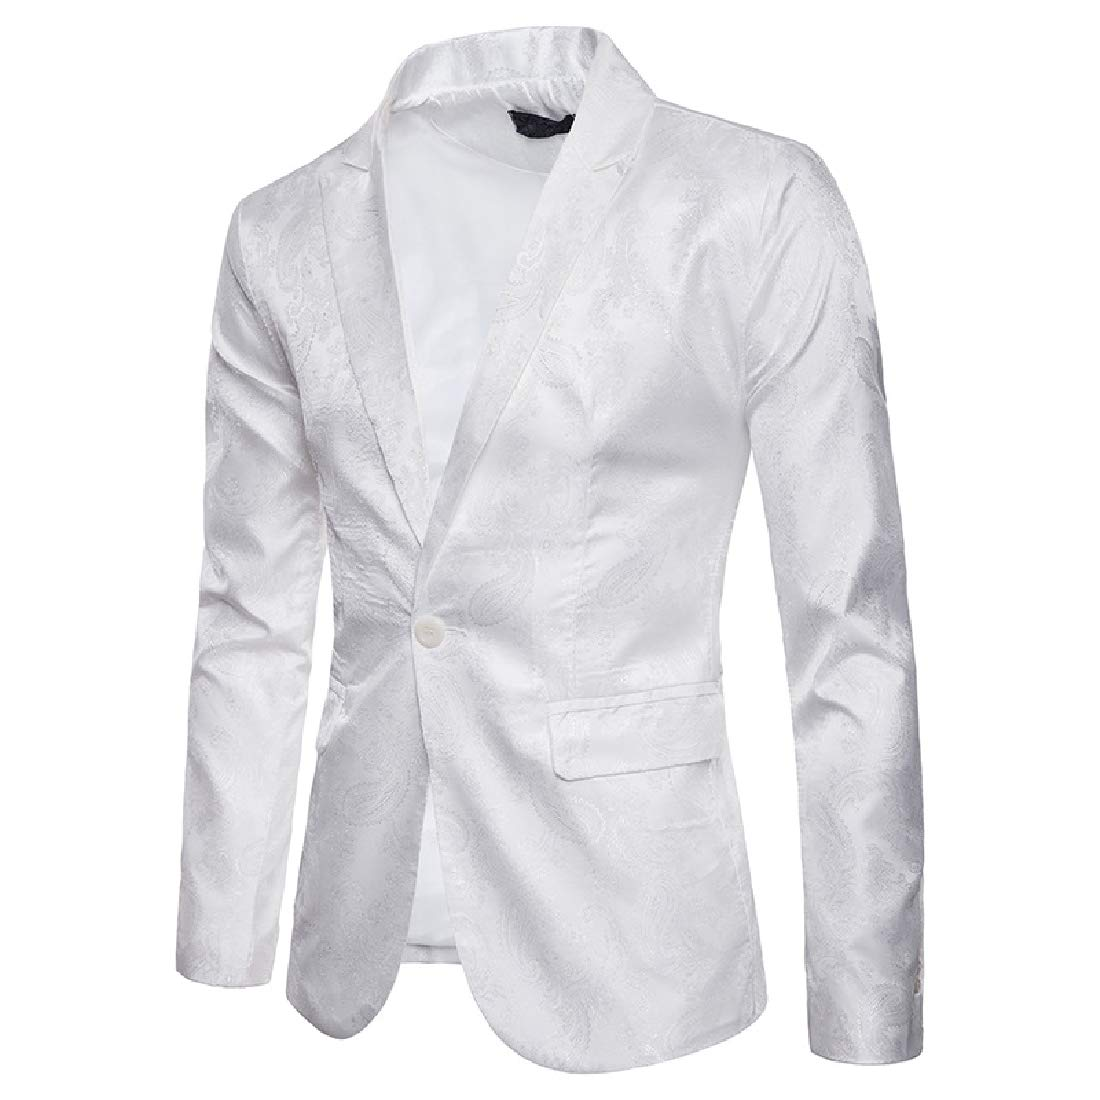 White Tootca Men Fitted One Button Dark Floral Court Style Casual Sport Coat Jacket Blazer